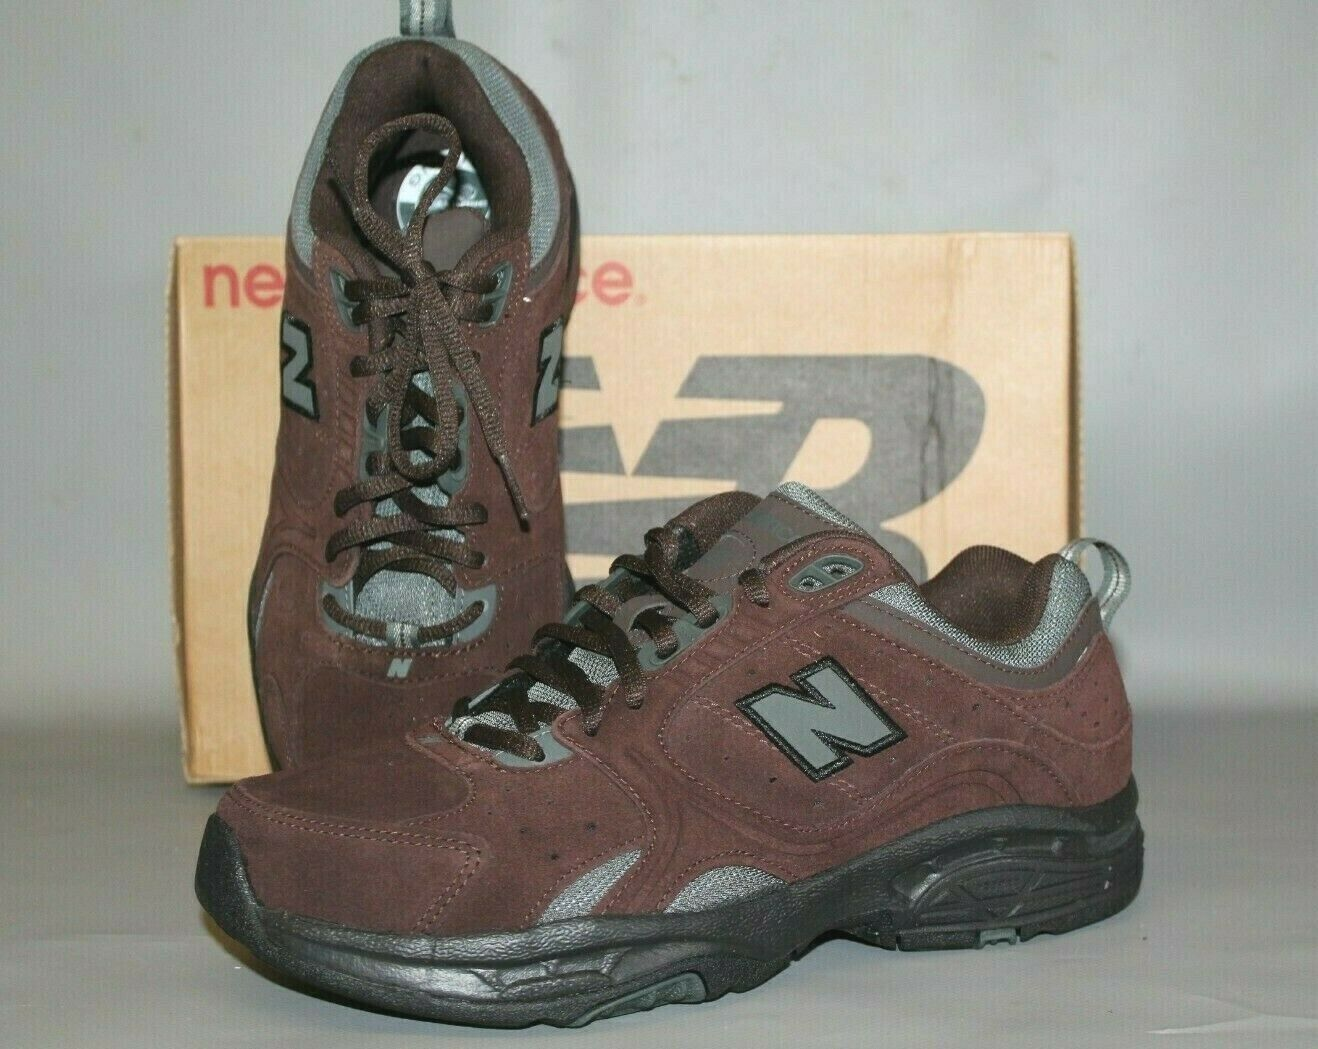 NEW Men's New Balance MX622OD Size 8 2E (Extra Wide) Brown Athletic shoes